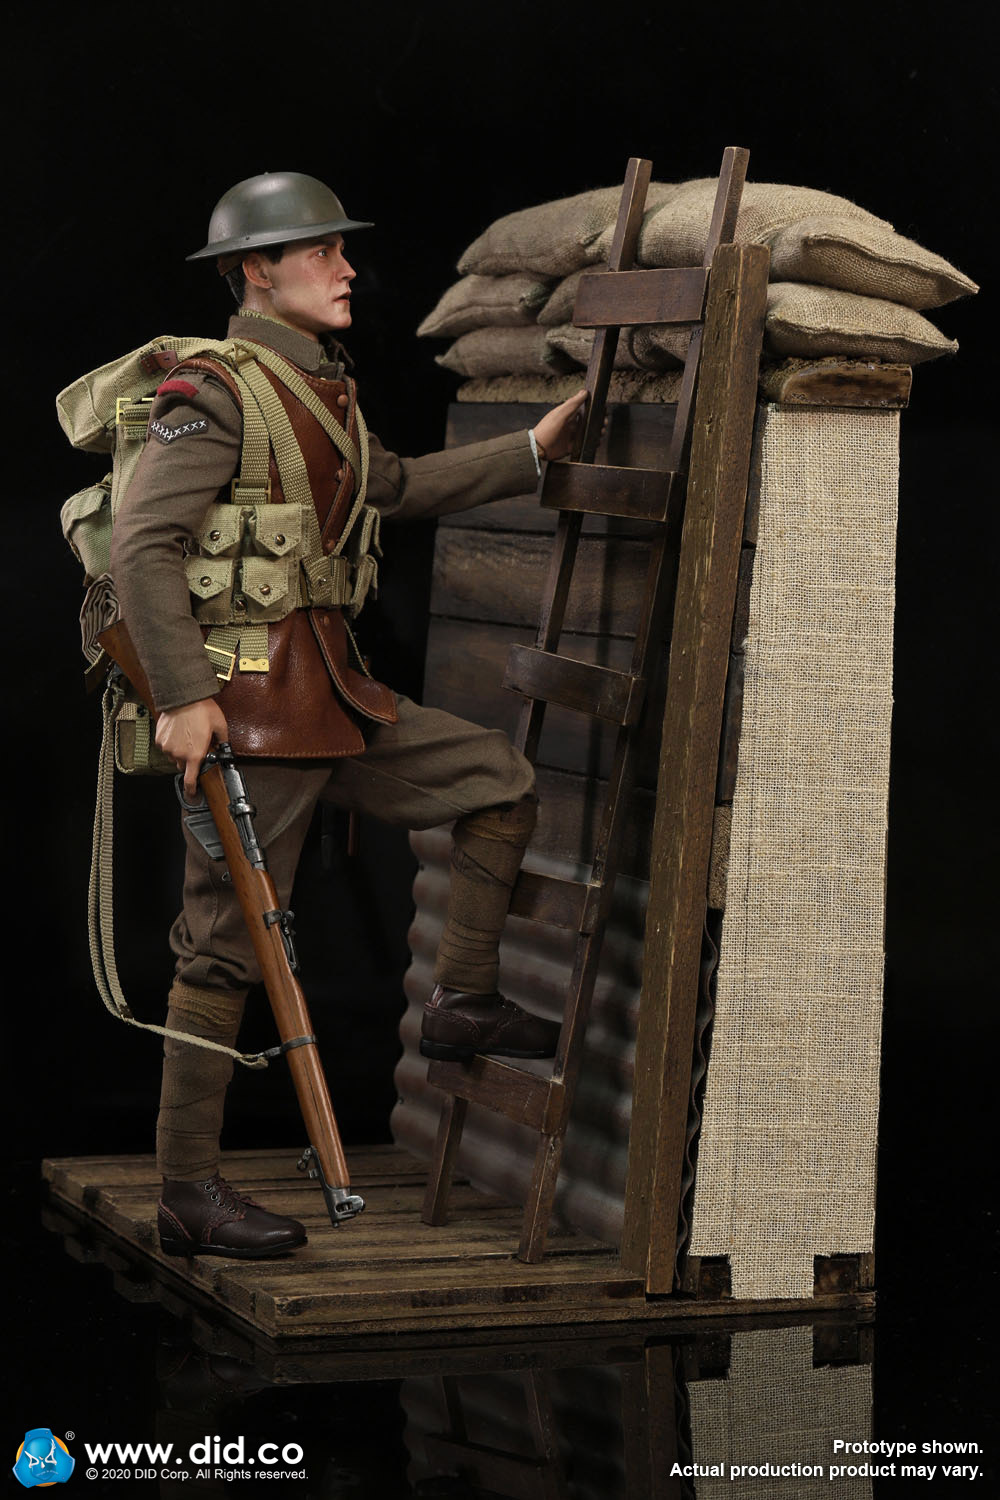 military - NEW PRODUCT: DiD: B11011 WWI British Infantry Lance Corporal William & Trench Diorama Set (UPDATED INFORMATION) 3440